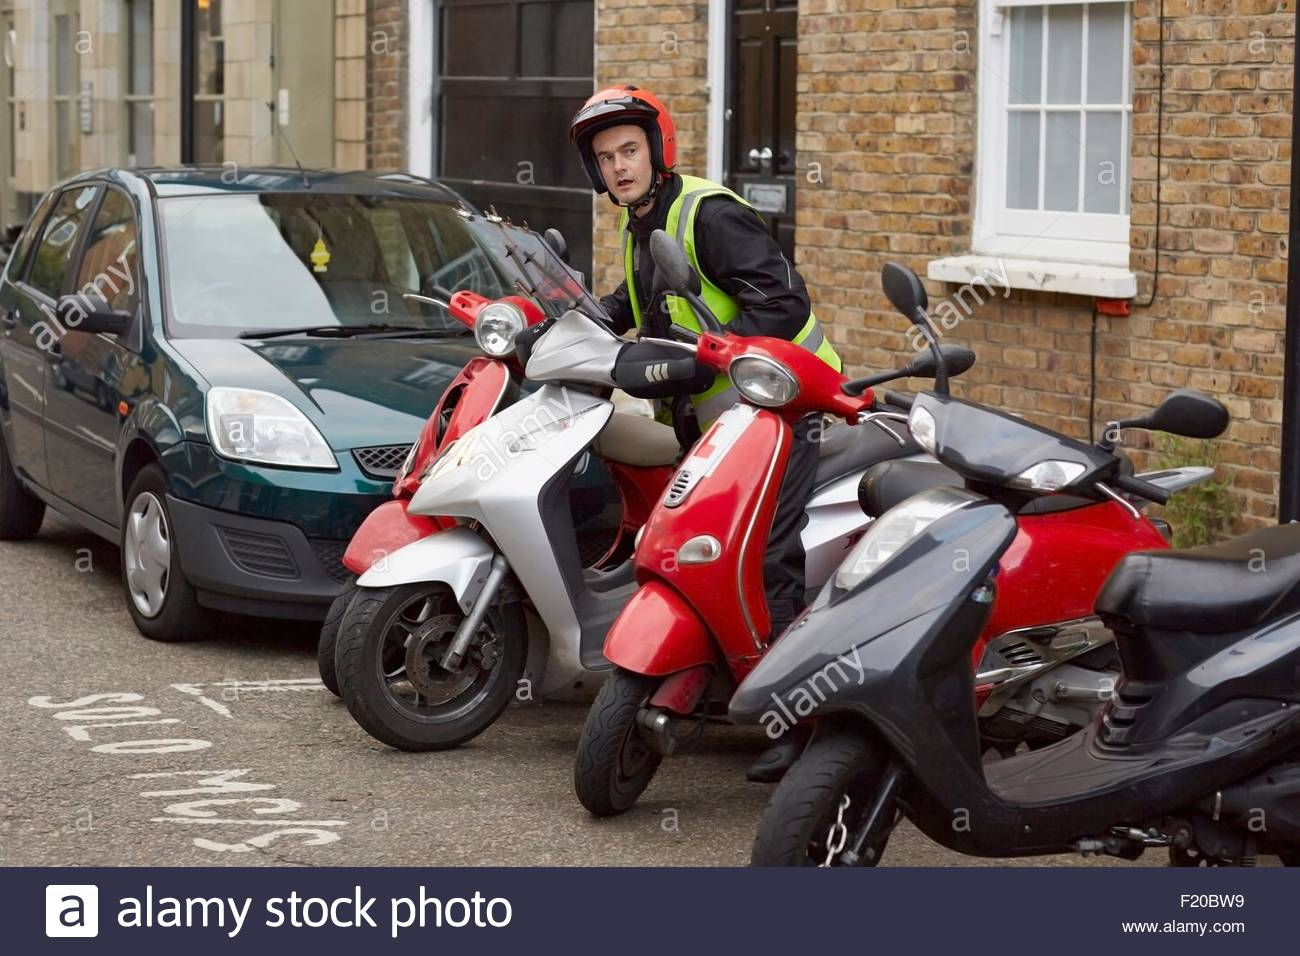 Motor scooter rider parking on street - Stock Image